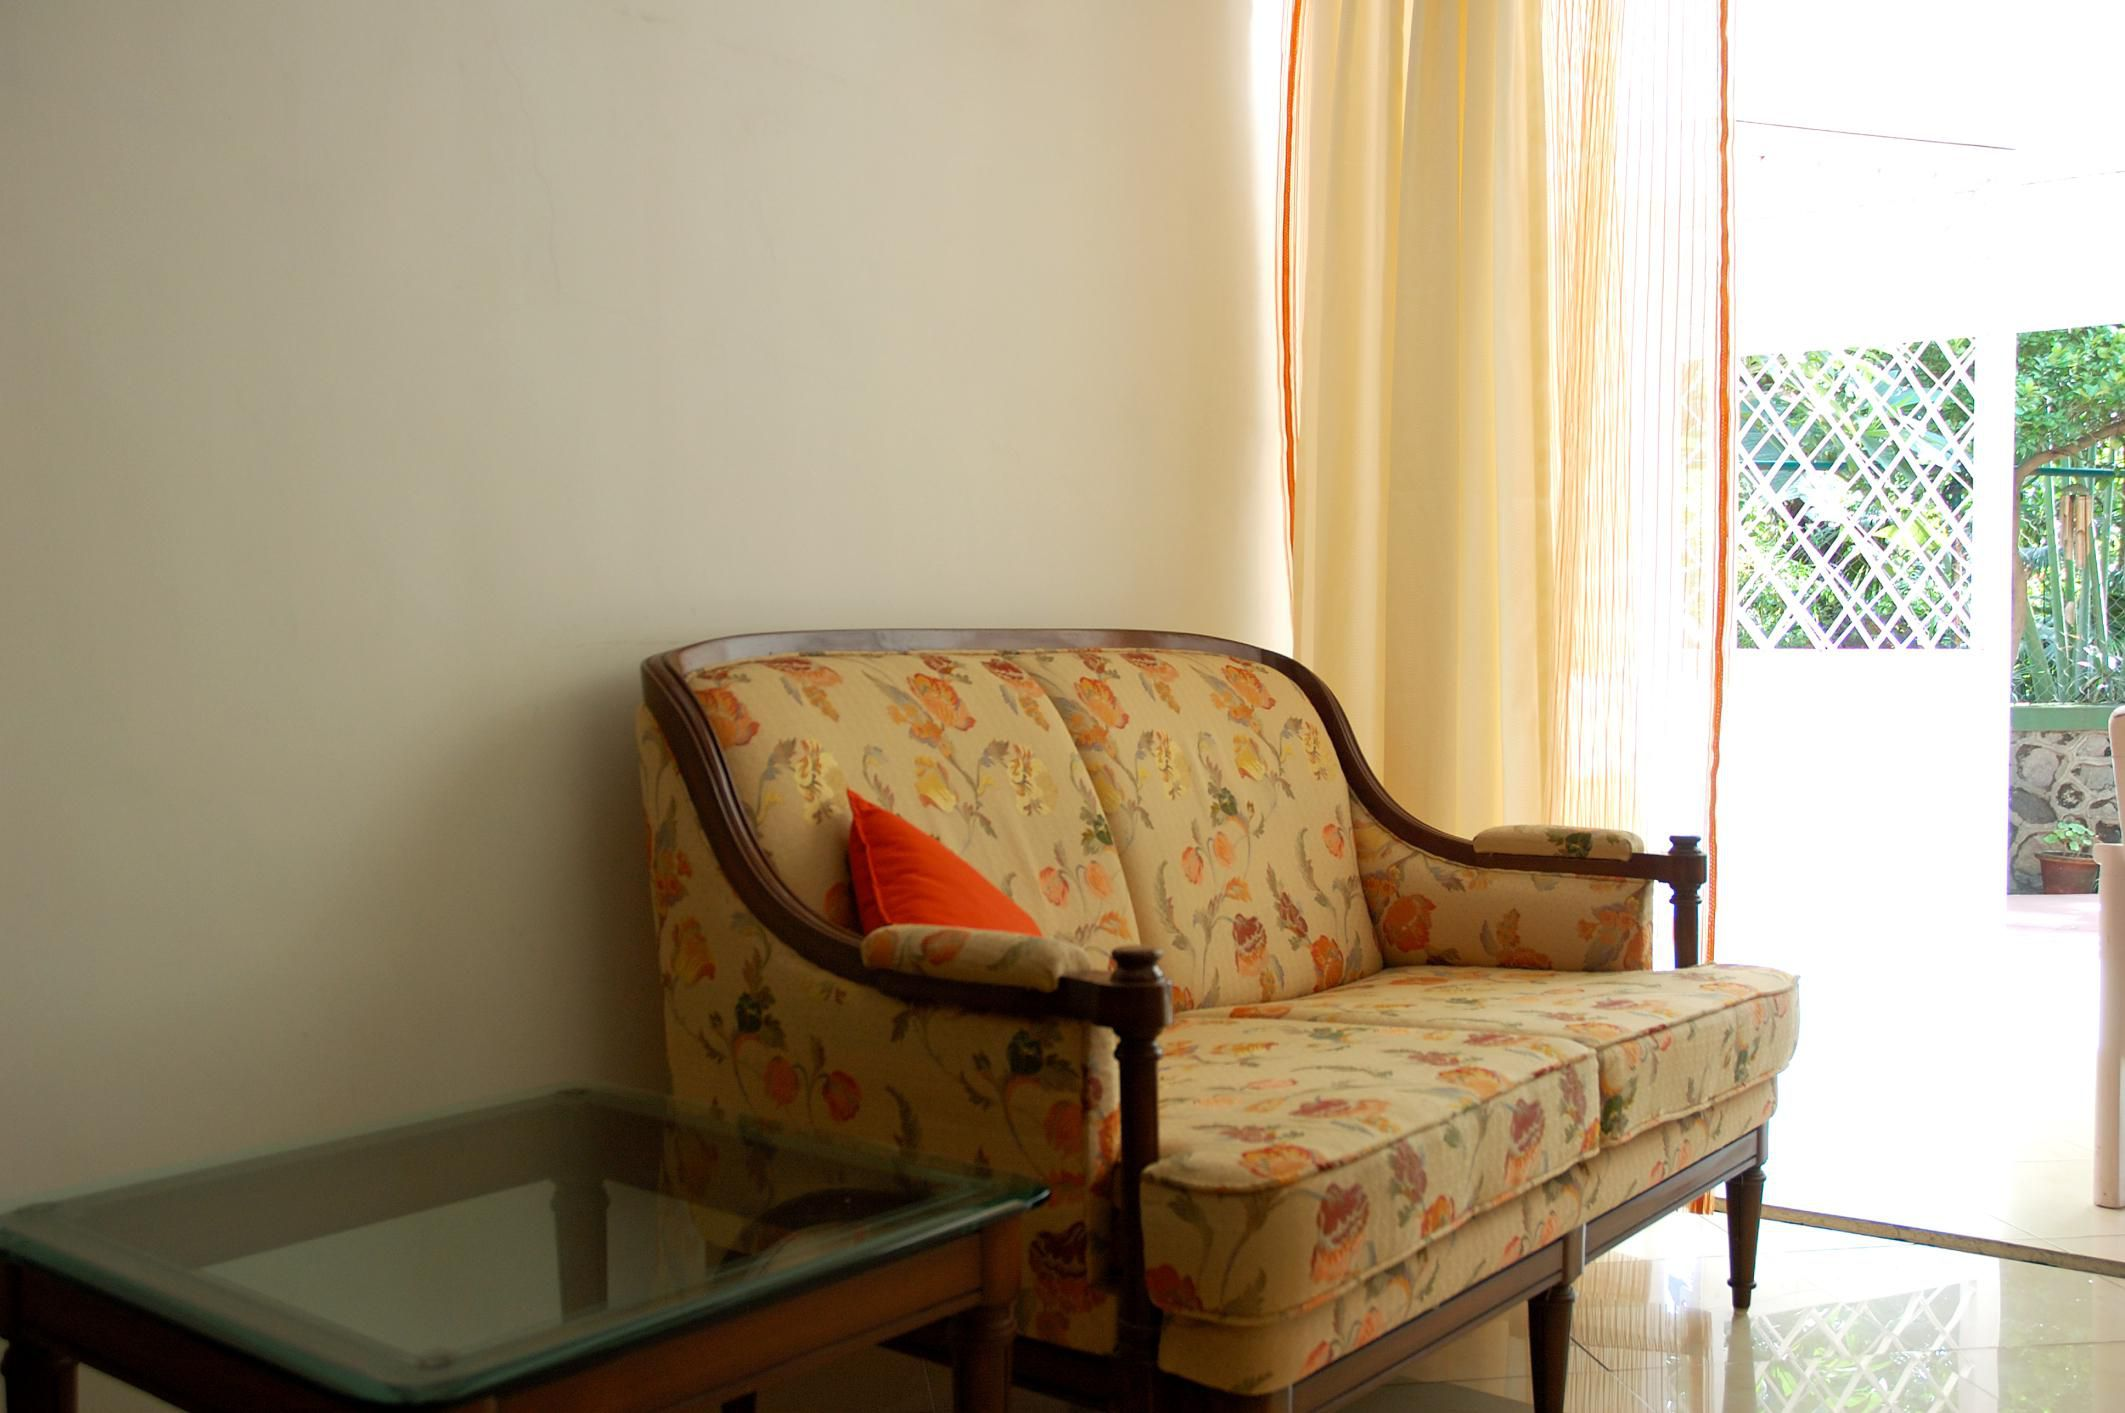 How to Price Your Used Furniture